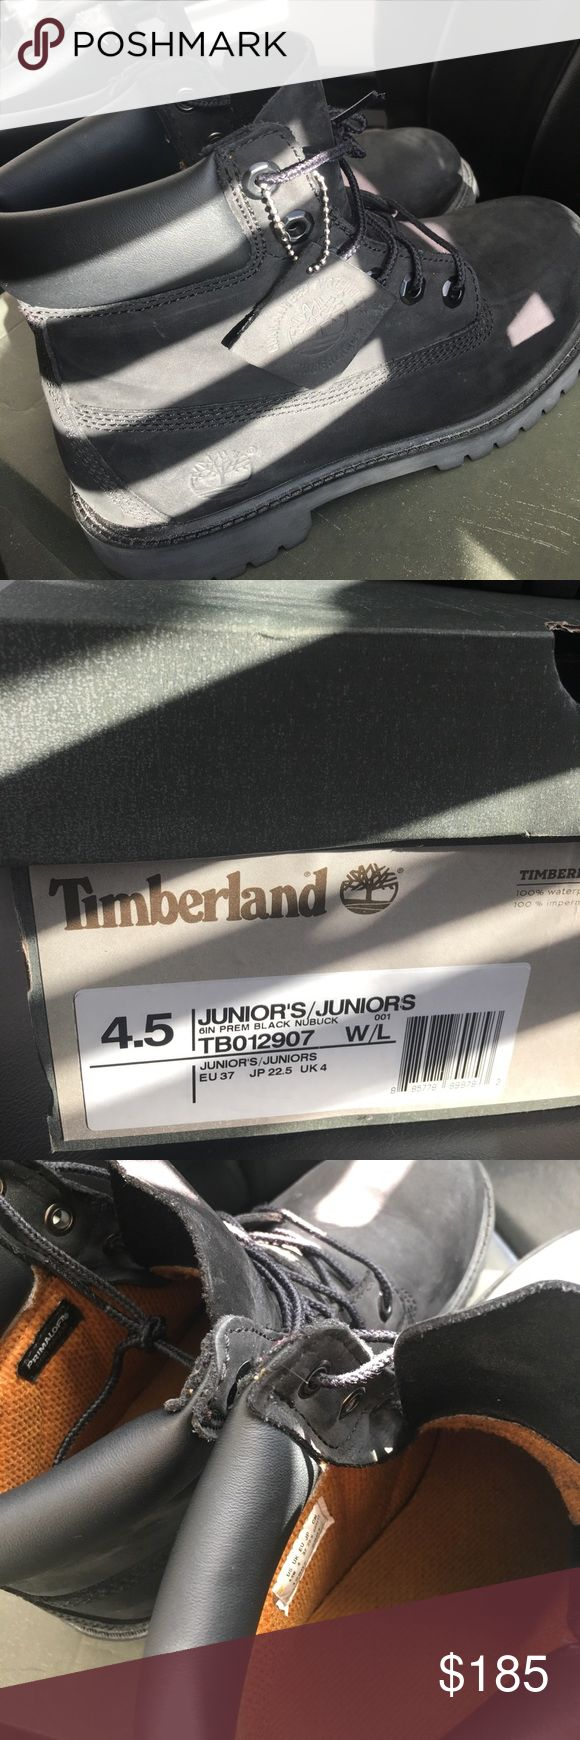 Timberland Black Boots Junior Size 4.5, EU Size 37 Worn Less than 10 times. I'm selling them because they fit a little too big on me! Timberland Shoes